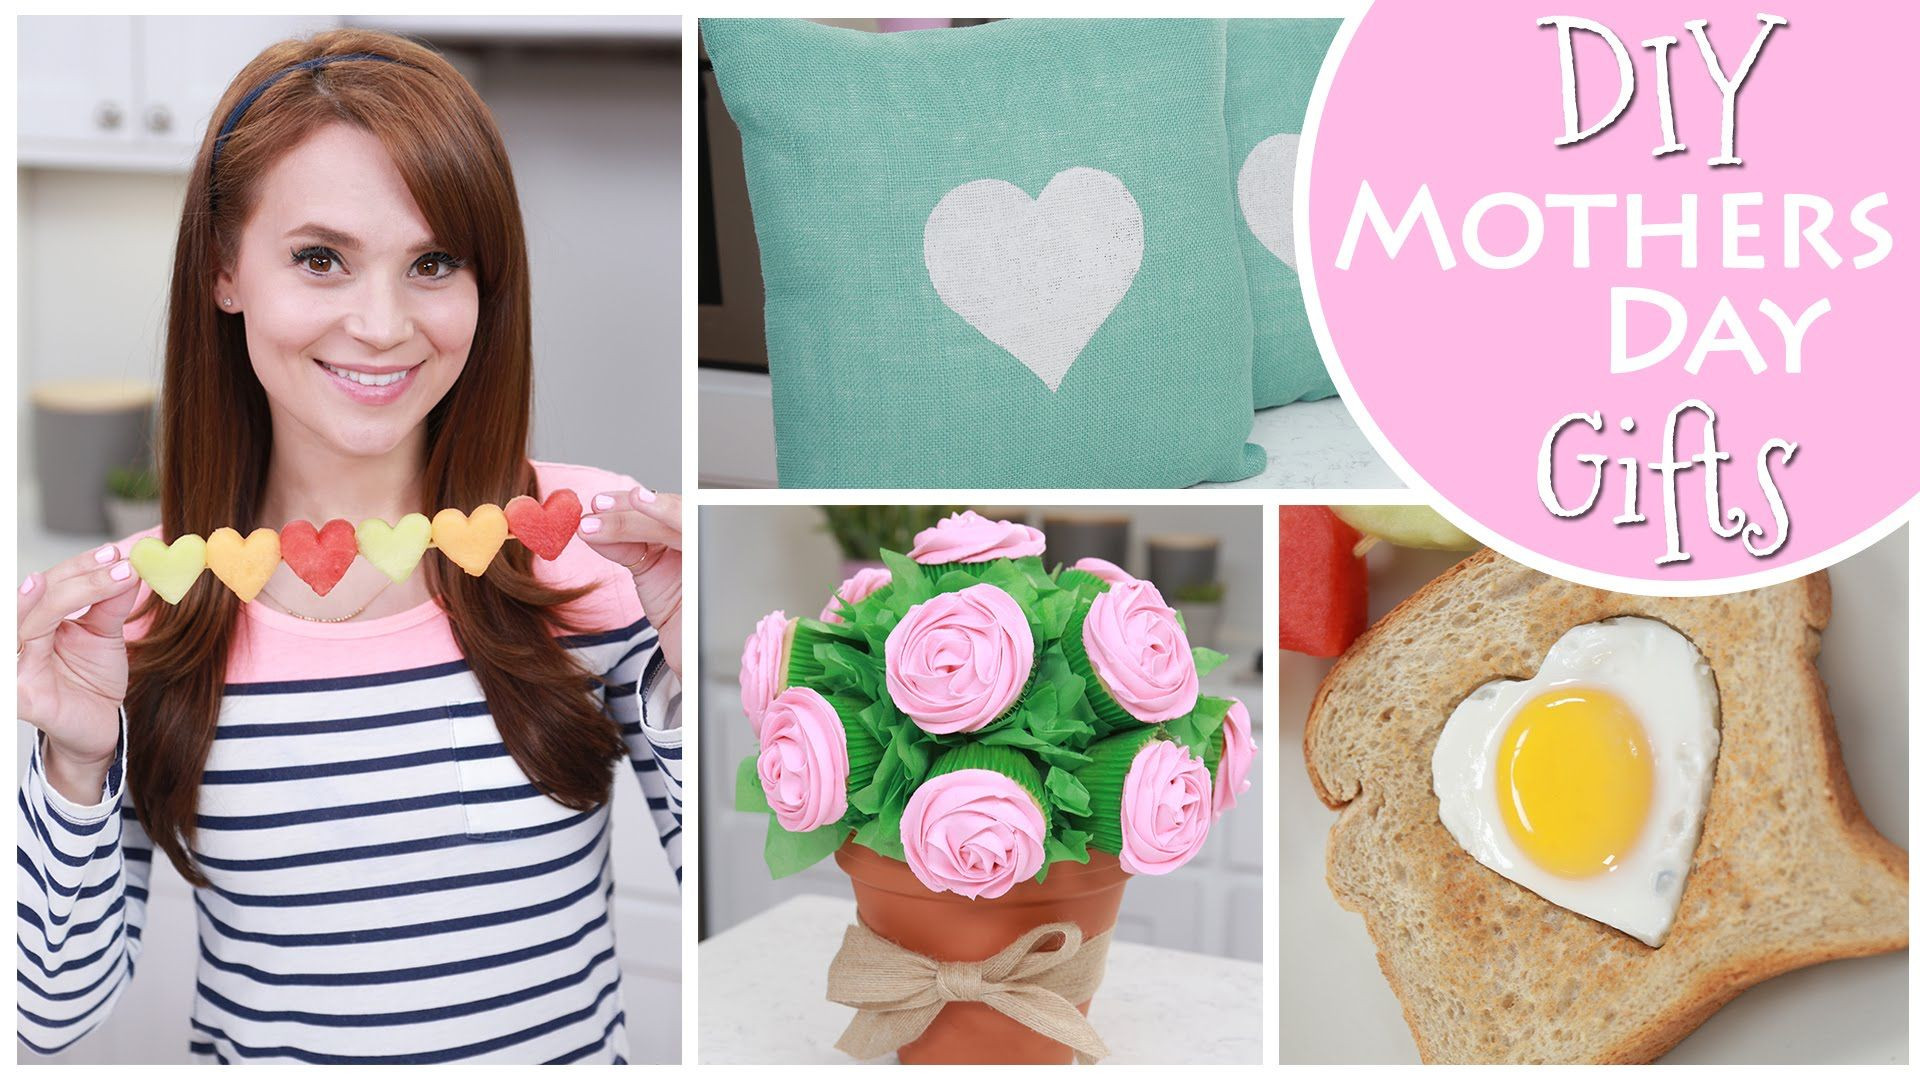 Pinterest Mothers Day Gift Ideas  DIY MOTHERS DAY GIFT IDEAS Videos